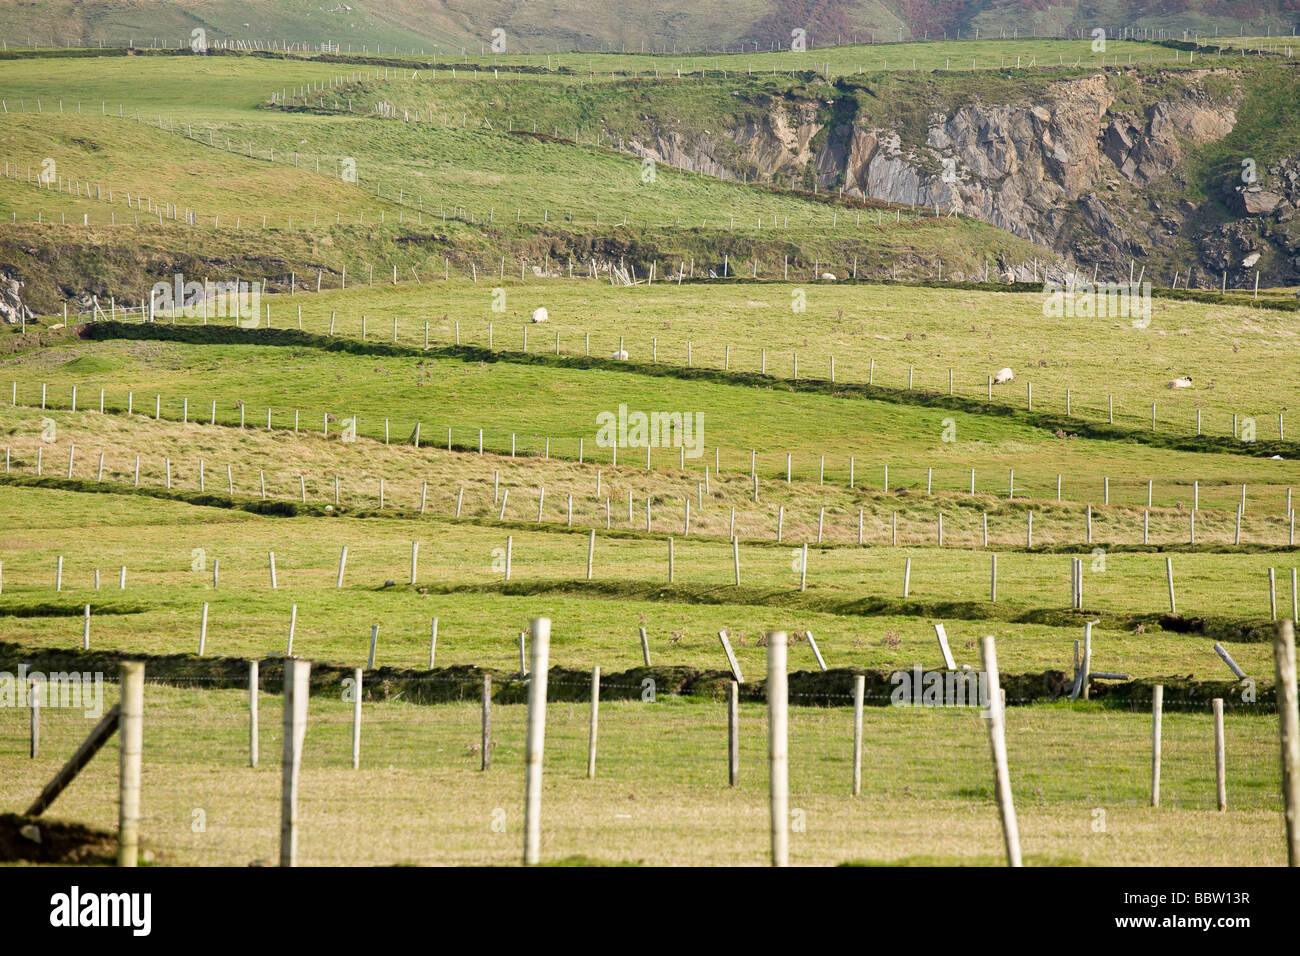 Fences. A series of wooden fence posts divide up the pasturelands and keep the sheep off the cliffs. - Stock Image